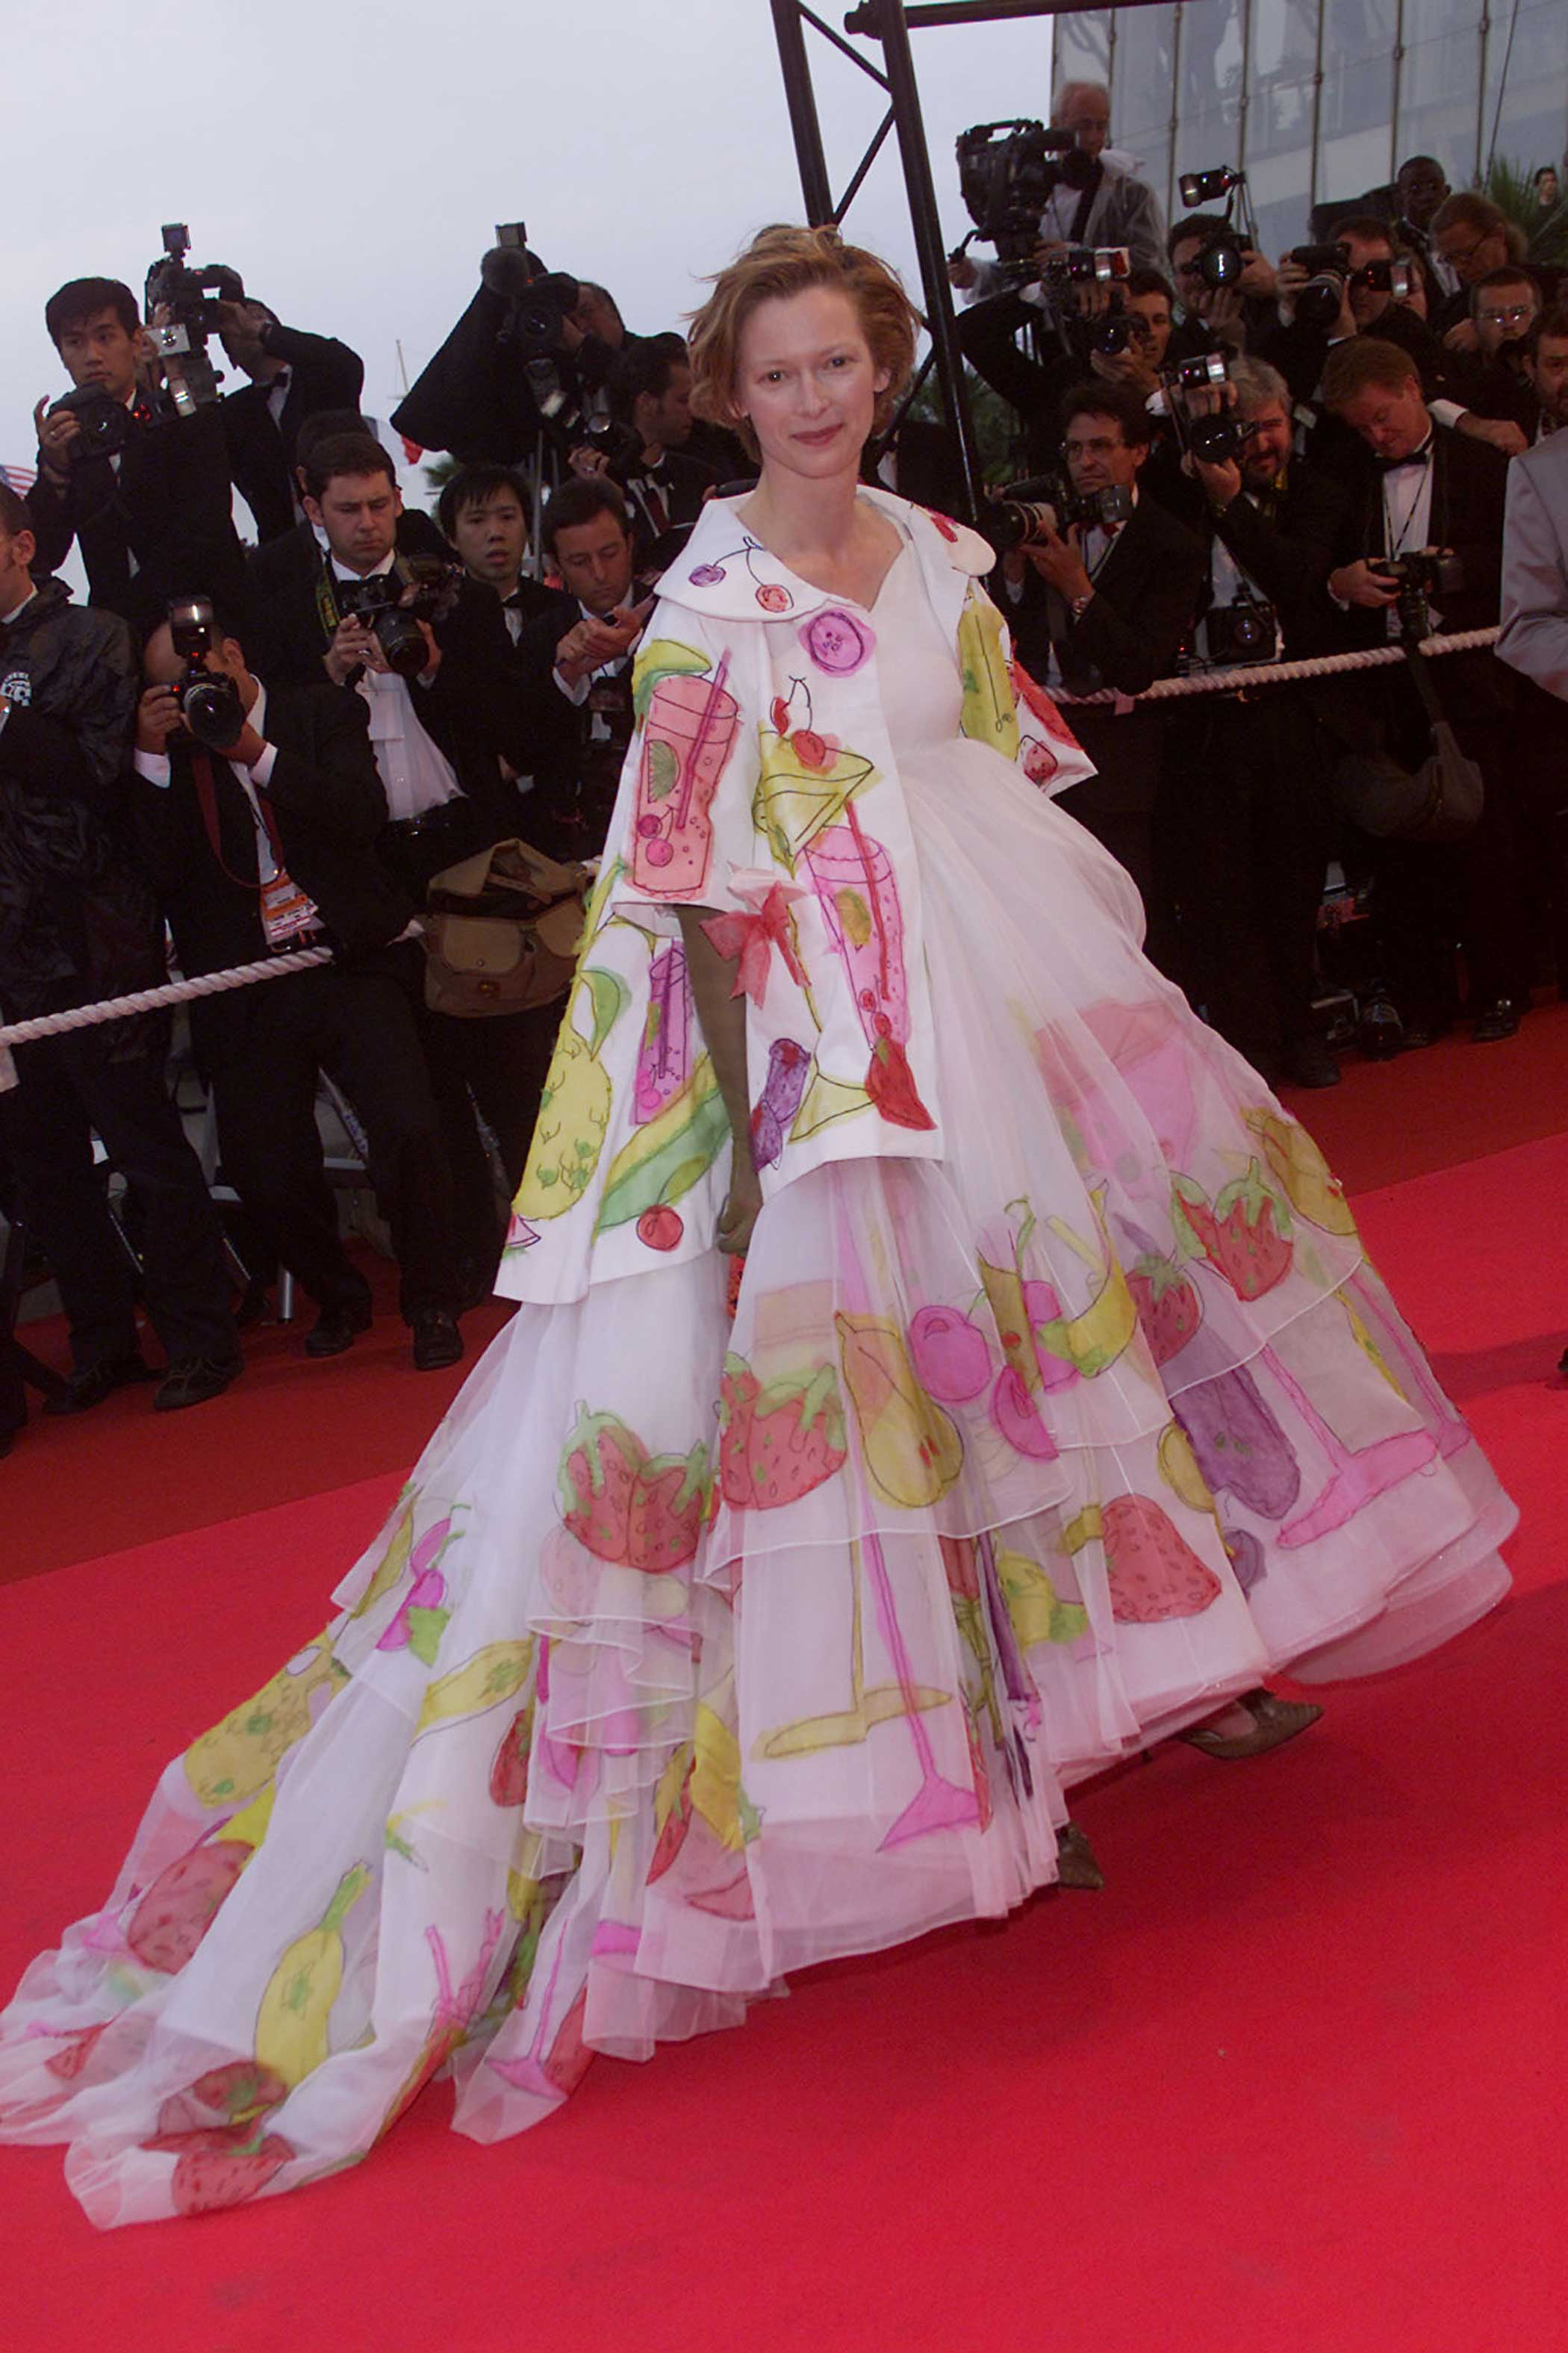 Tilda Swinton arrives at the Palme d'Or Award Ceremony at the 54th Cannes Film Festival in Cannes, France on May 20, 2001.